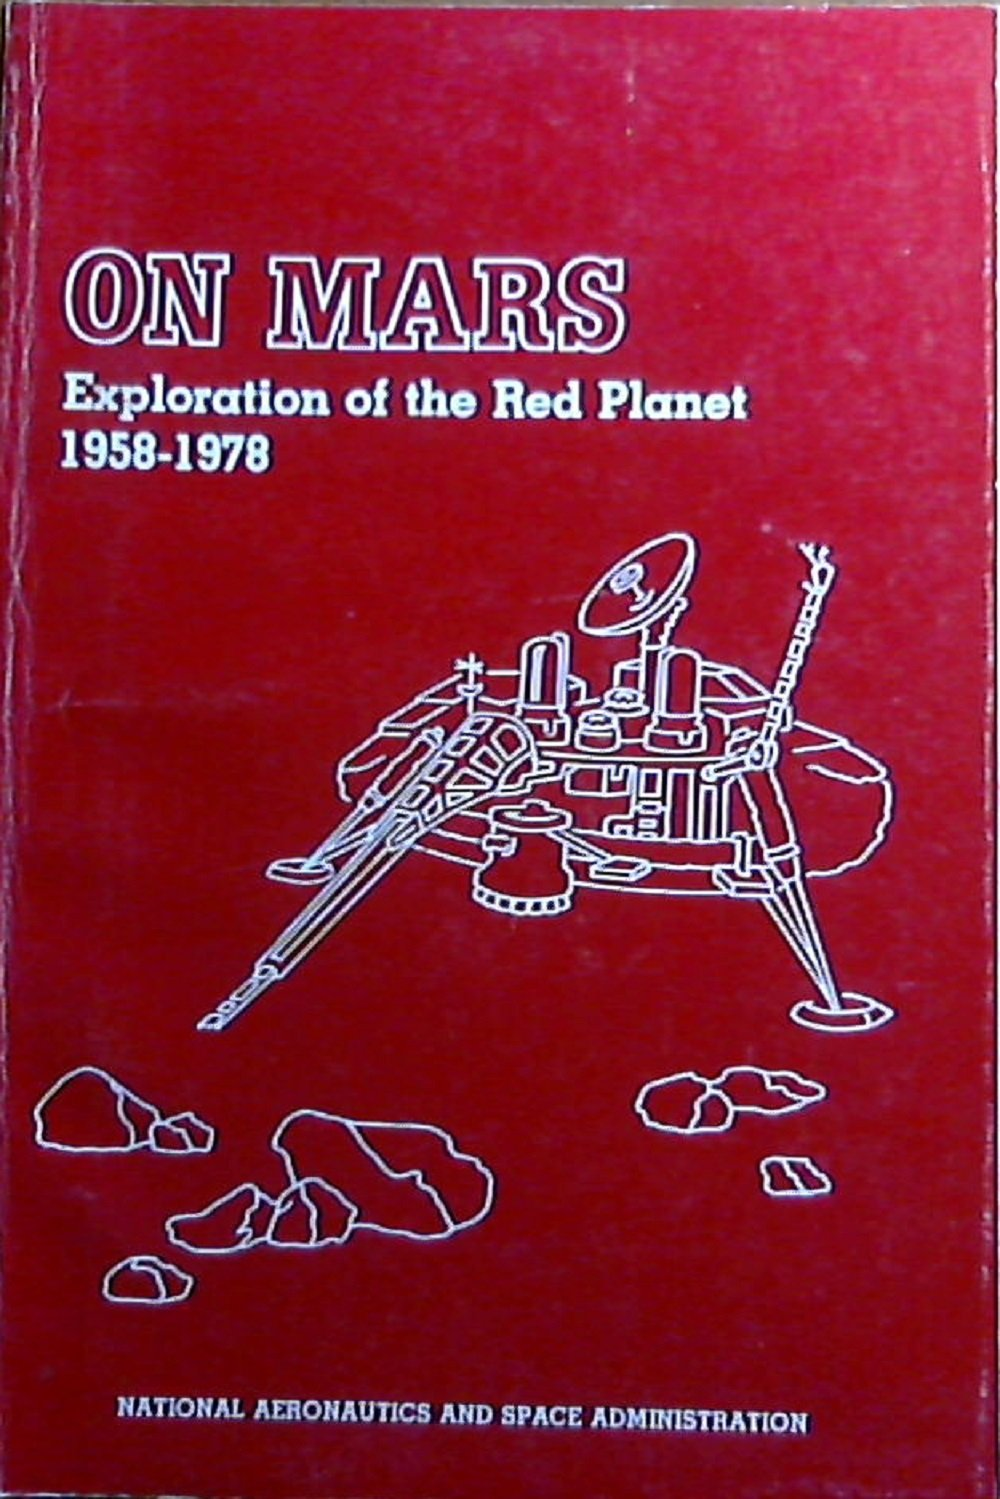 On Mars: Exploration of the Red Planet, 1958-1978 (NASA SP,4212)